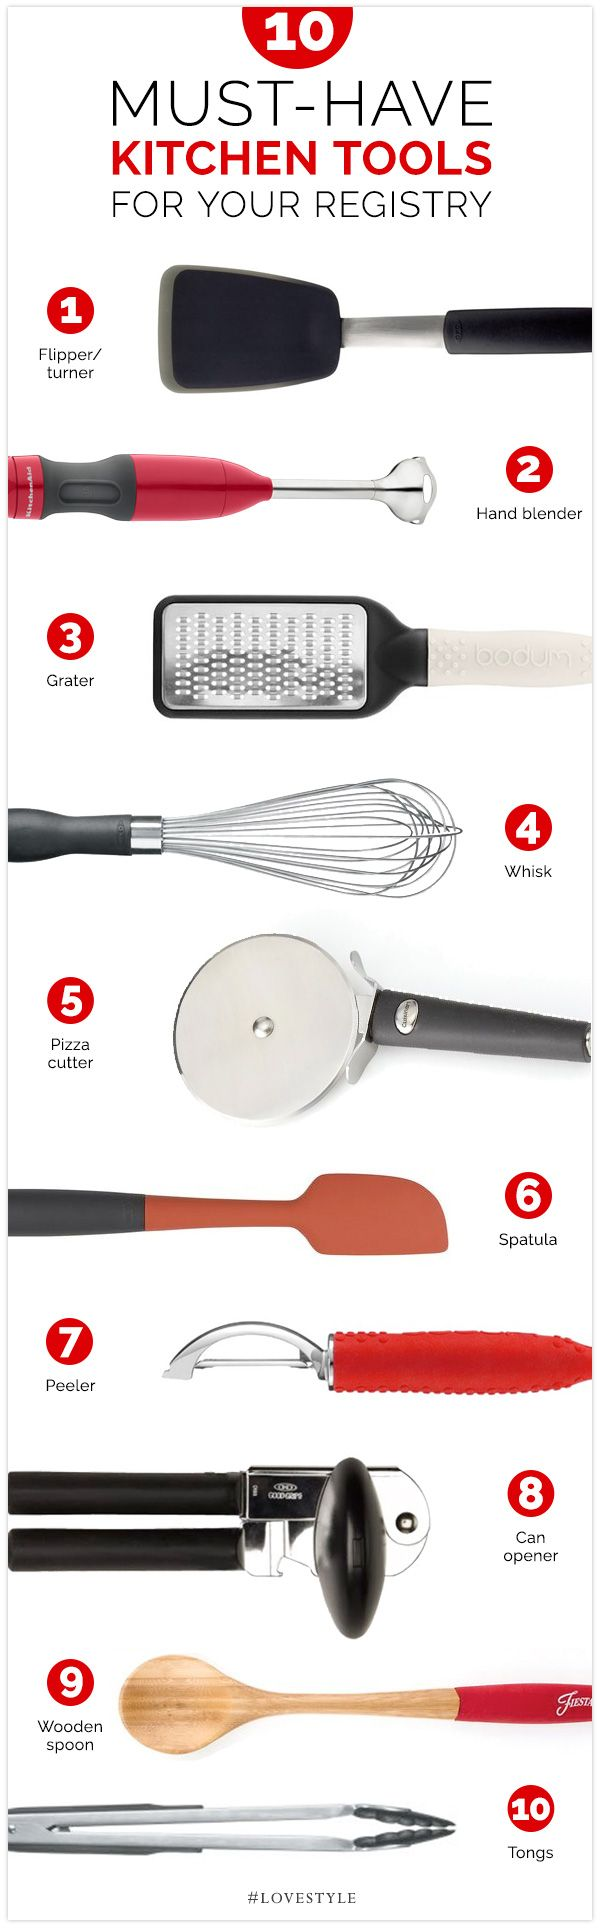 Kitchen equipment and their uses - 10 Must Have Kitchen Tools For Your Registry